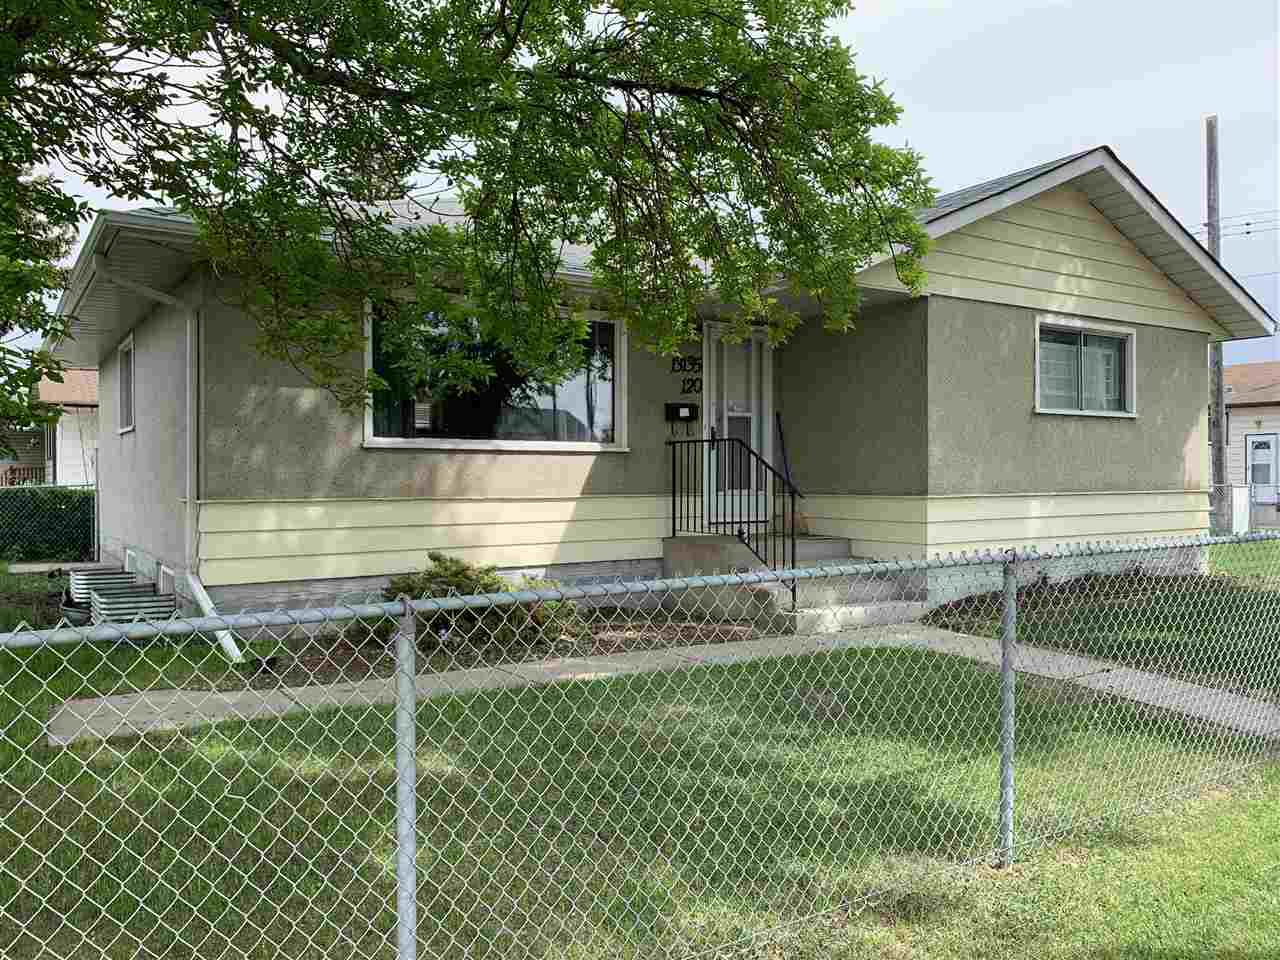 Main Photo: 13135 120 Street in Edmonton: Zone 01 House for sale : MLS®# E4159669